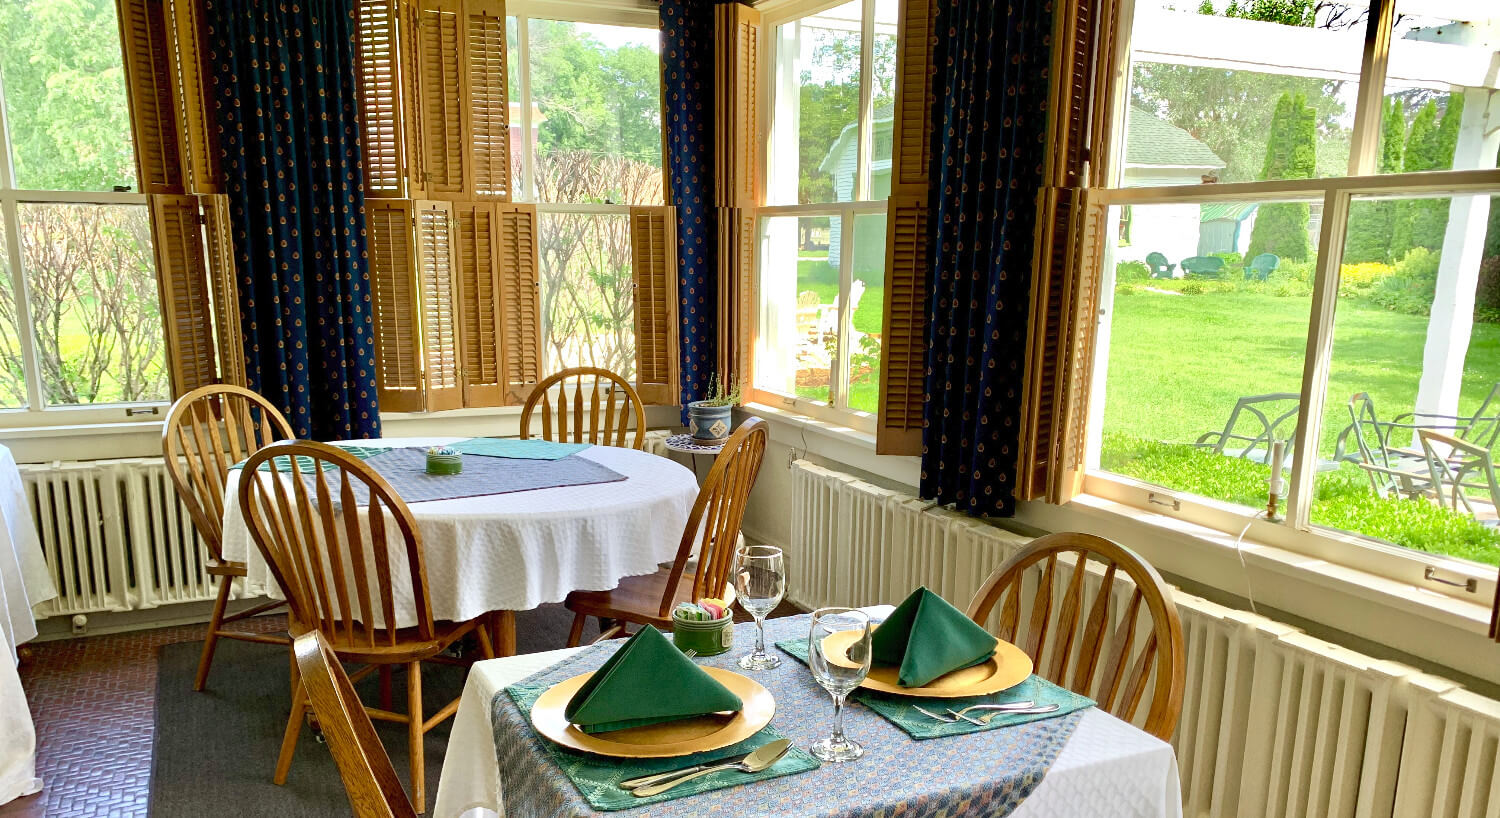 Bright breakfast room with tales for two to four set with white cloths.